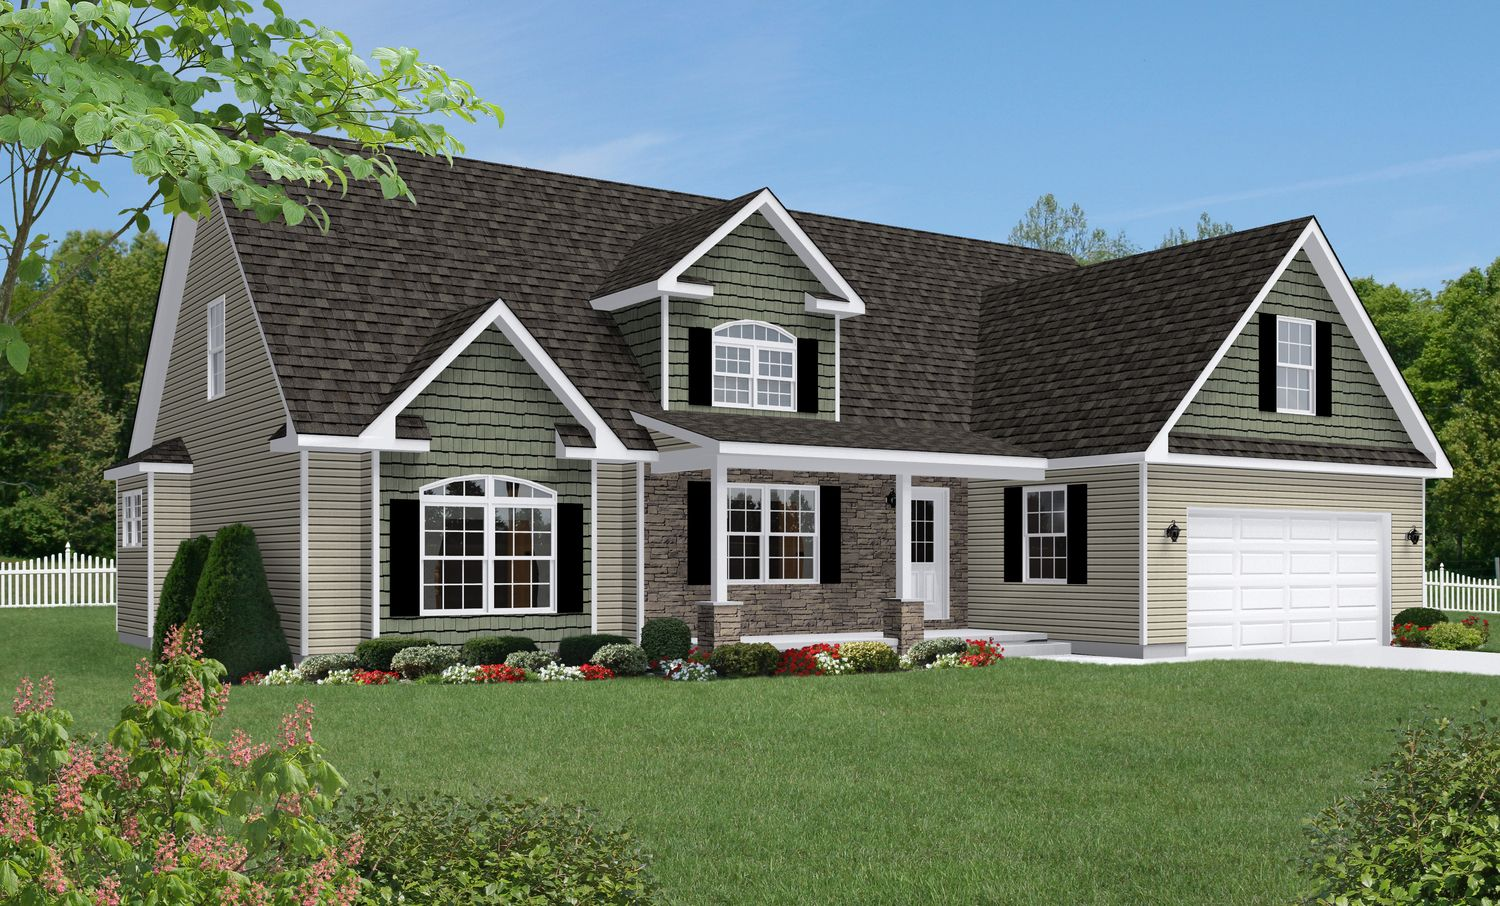 Shown With Optional Reverse Gable Dormer With Cornice Returns